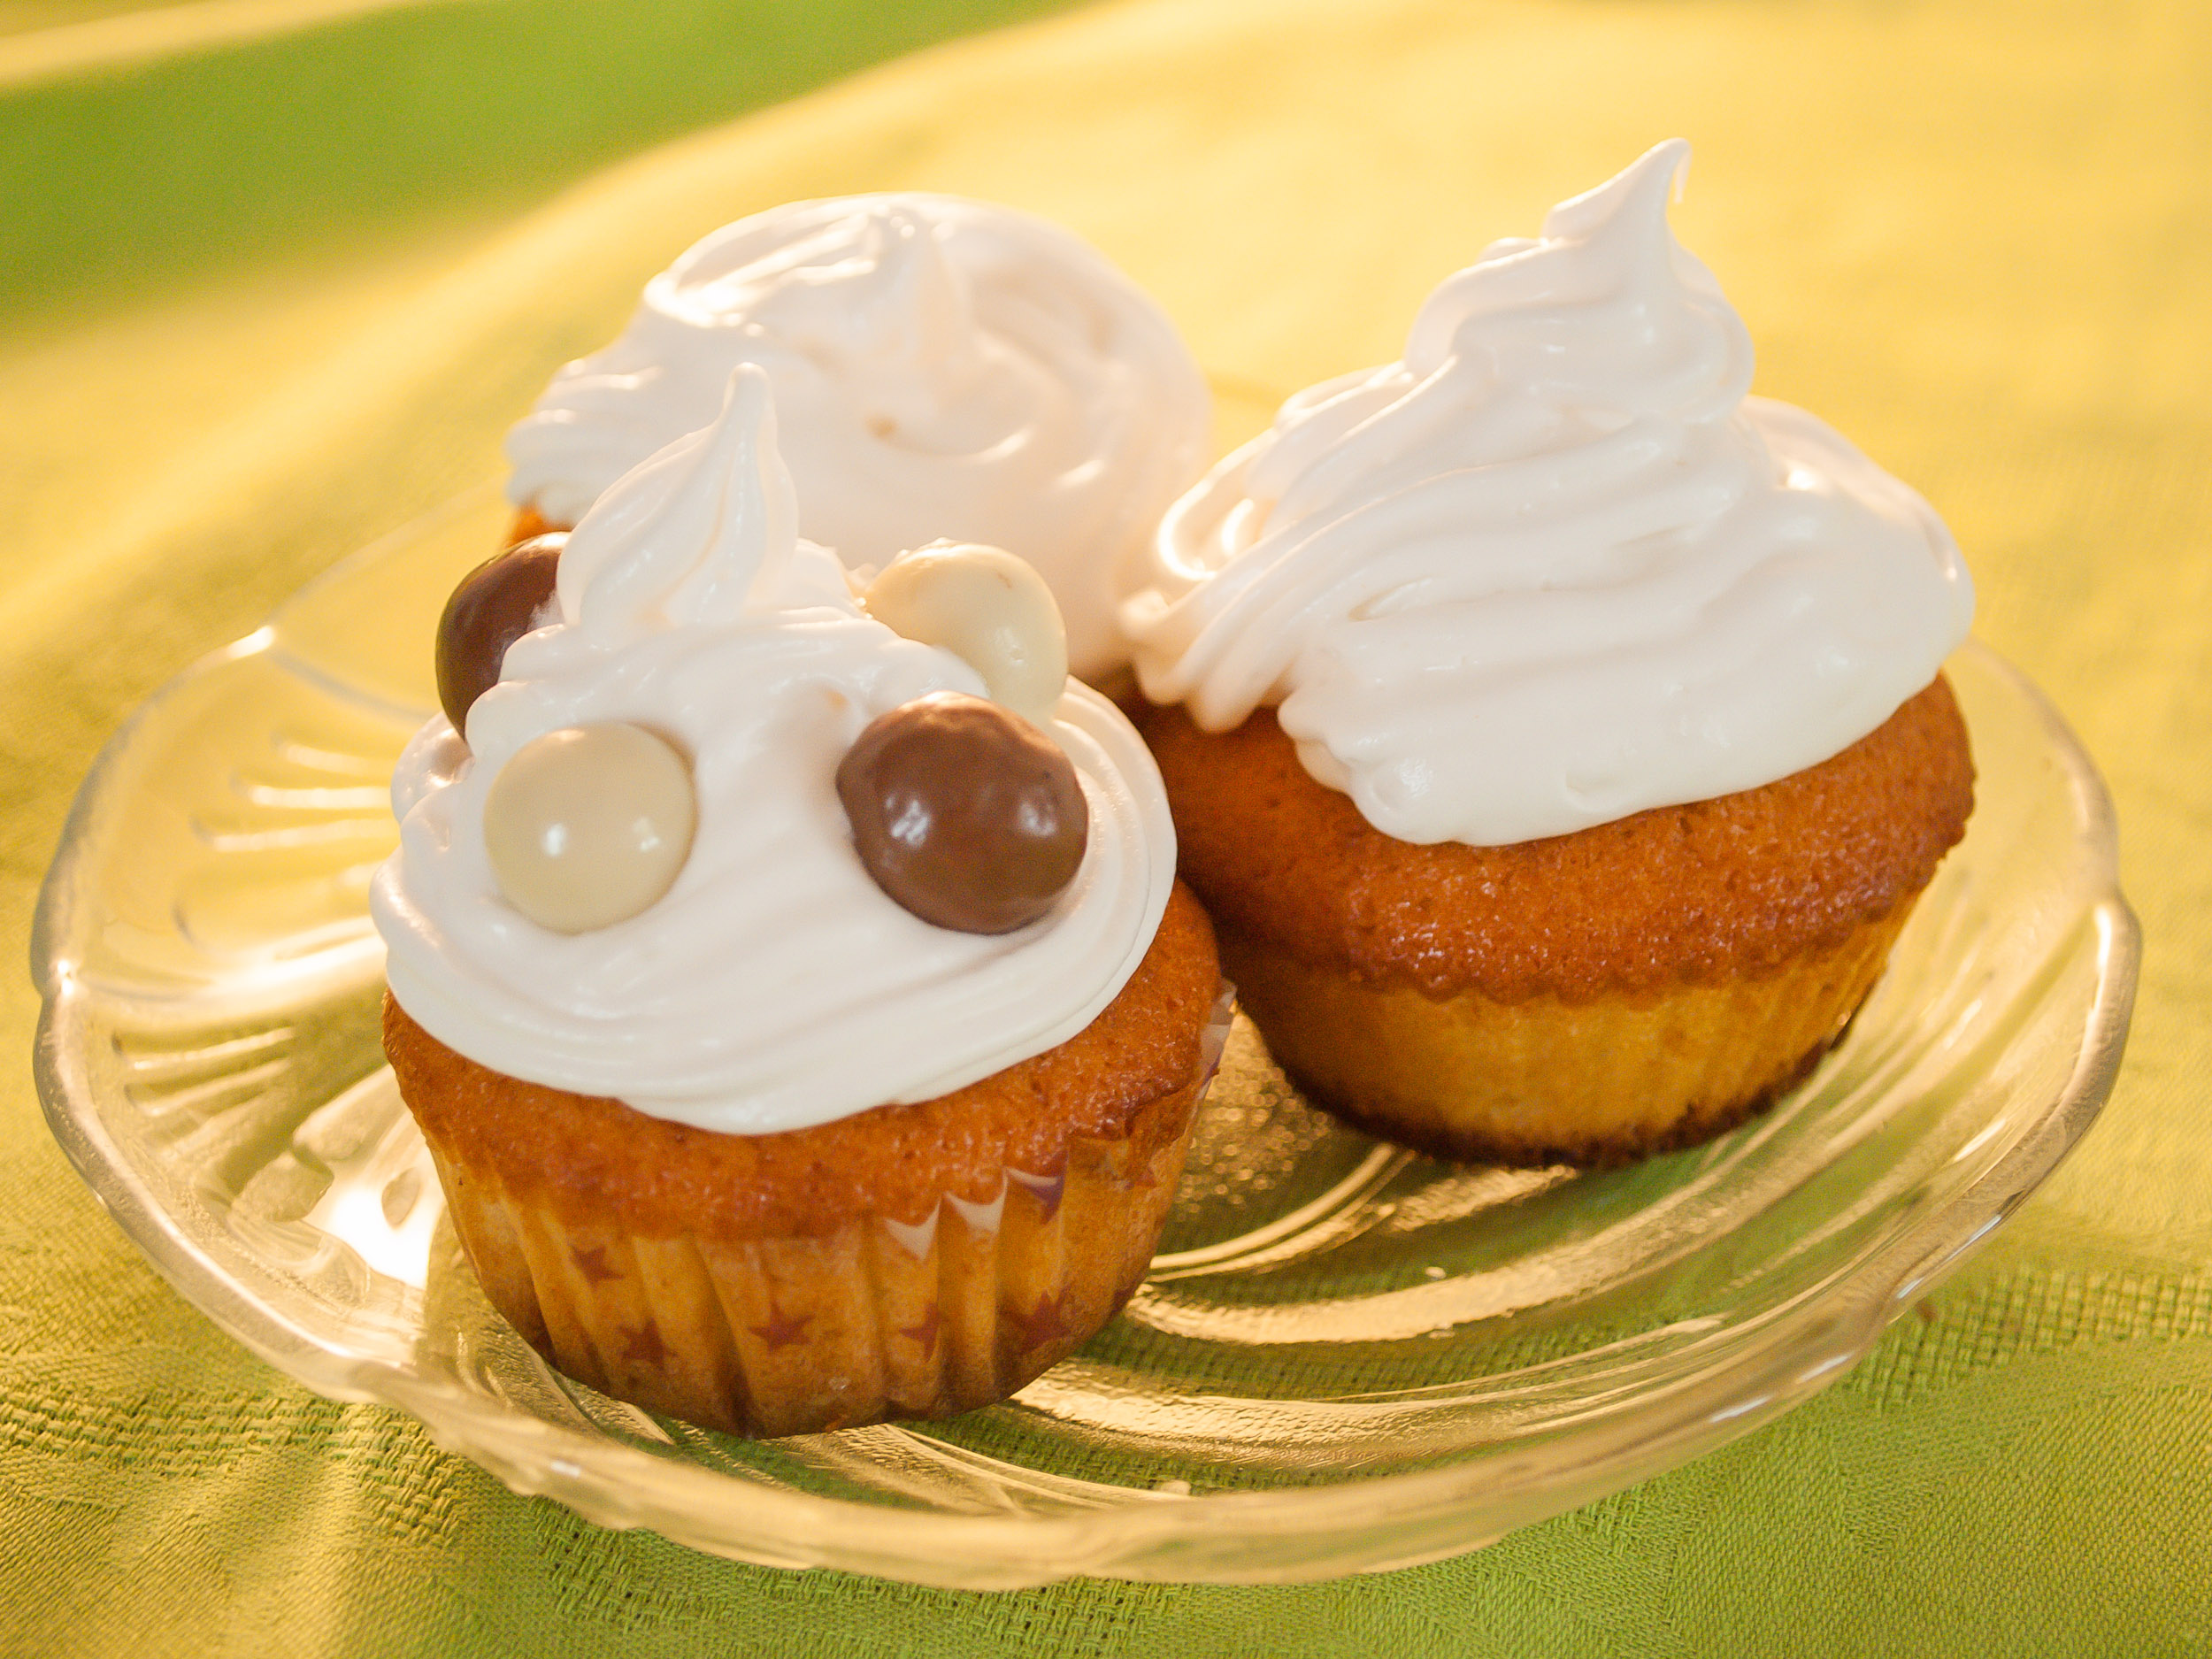 How To Make Vanilla Cupcakes: 12 Steps (with Pictures